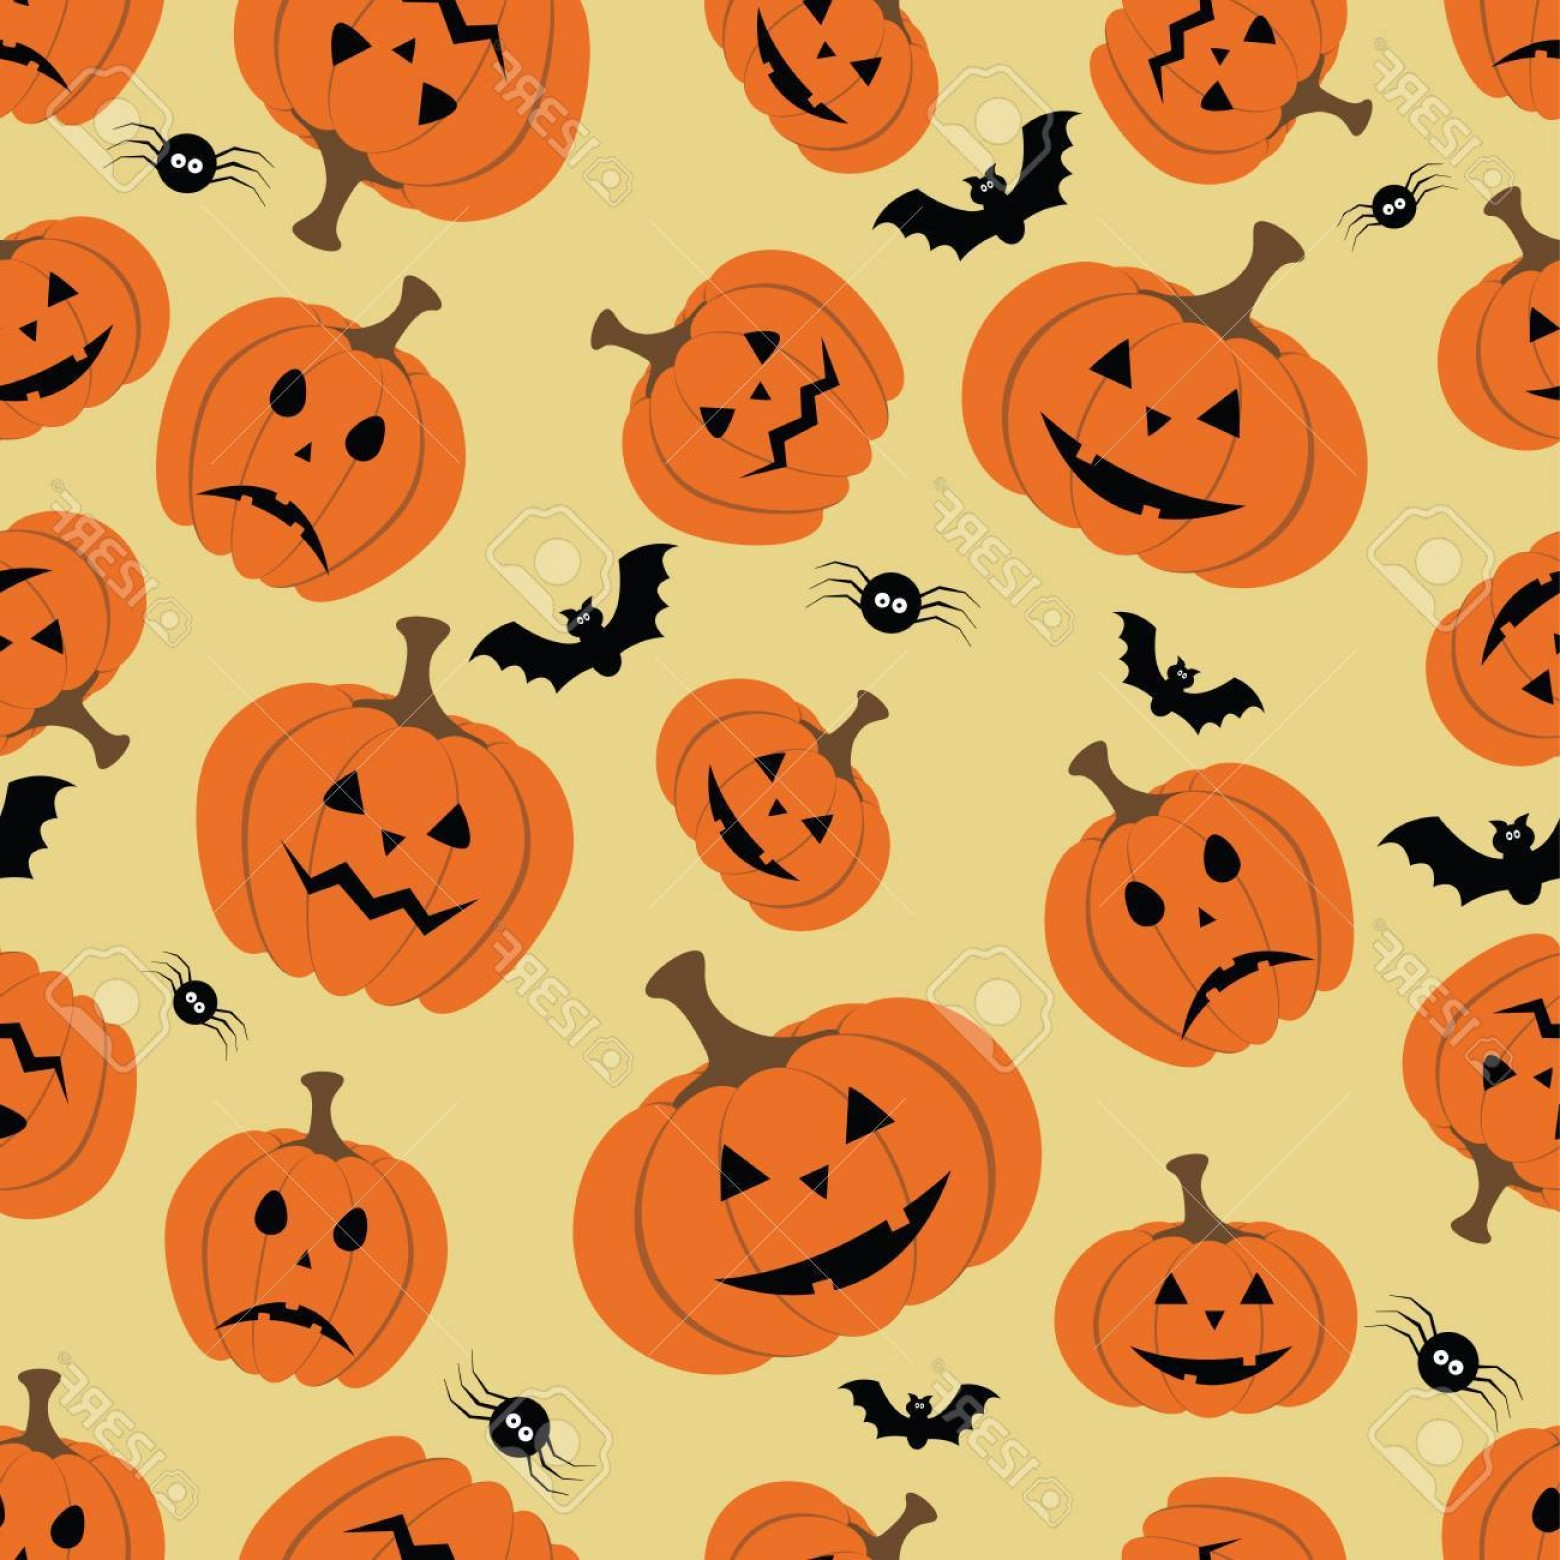 Easy Spider Vector Illustration: Photostock Vector Halloween Seamless Pattern With Pumpkin Bat And Spider Vector File Layered For Easy Manipulation And